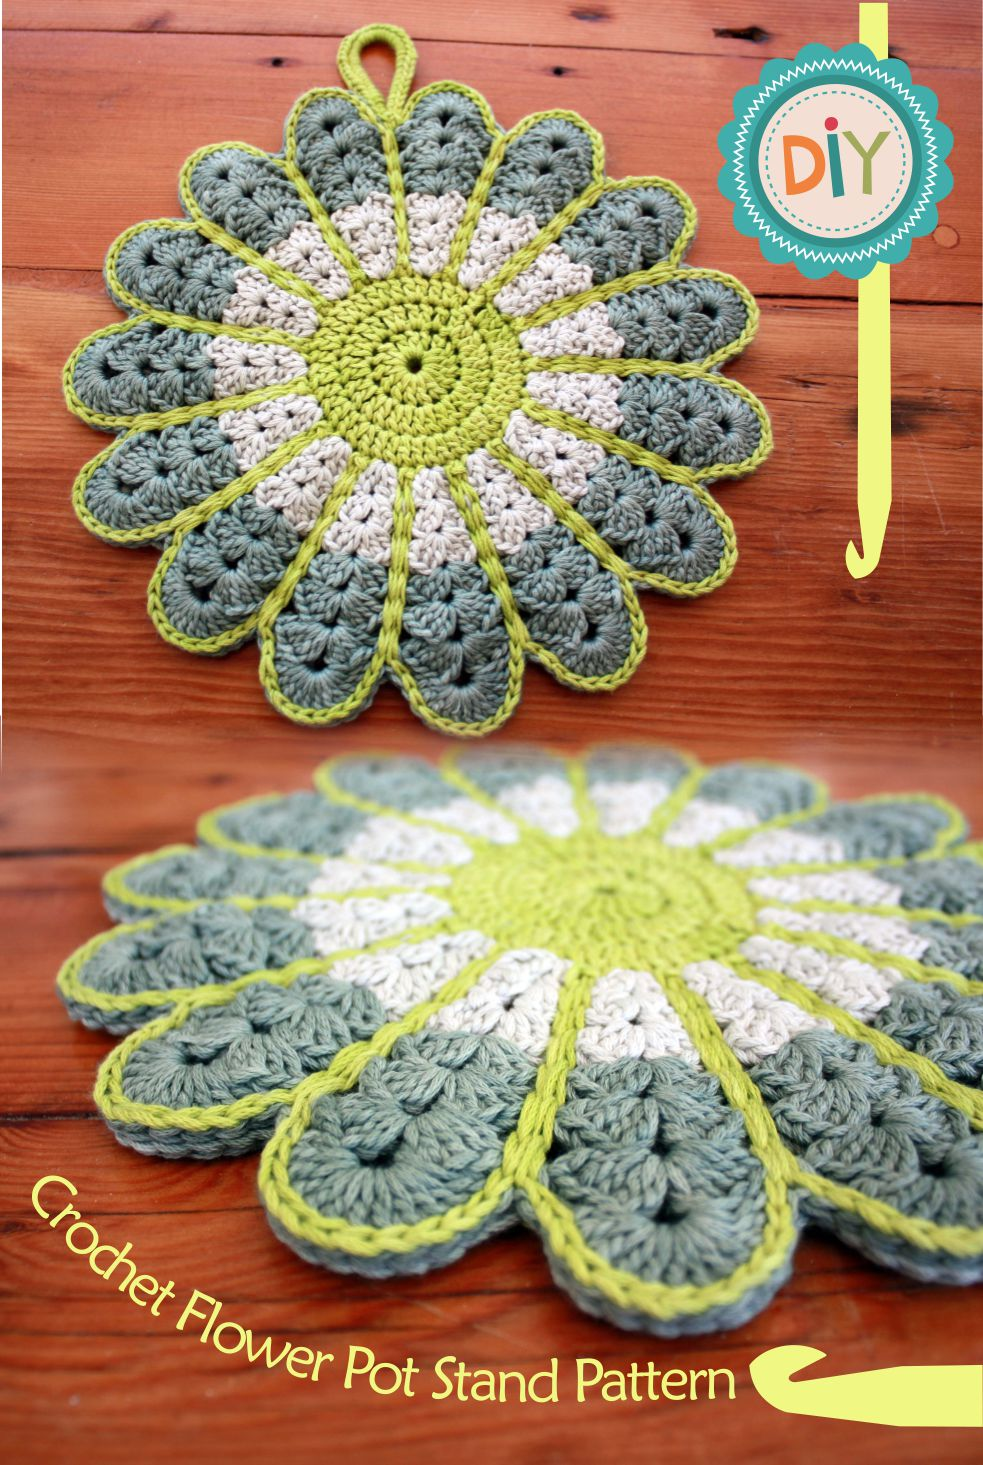 Free Crochet Pattern Large Flower : RubyRed Eclectic: FREE Pattern - Crochet Flower Potstand